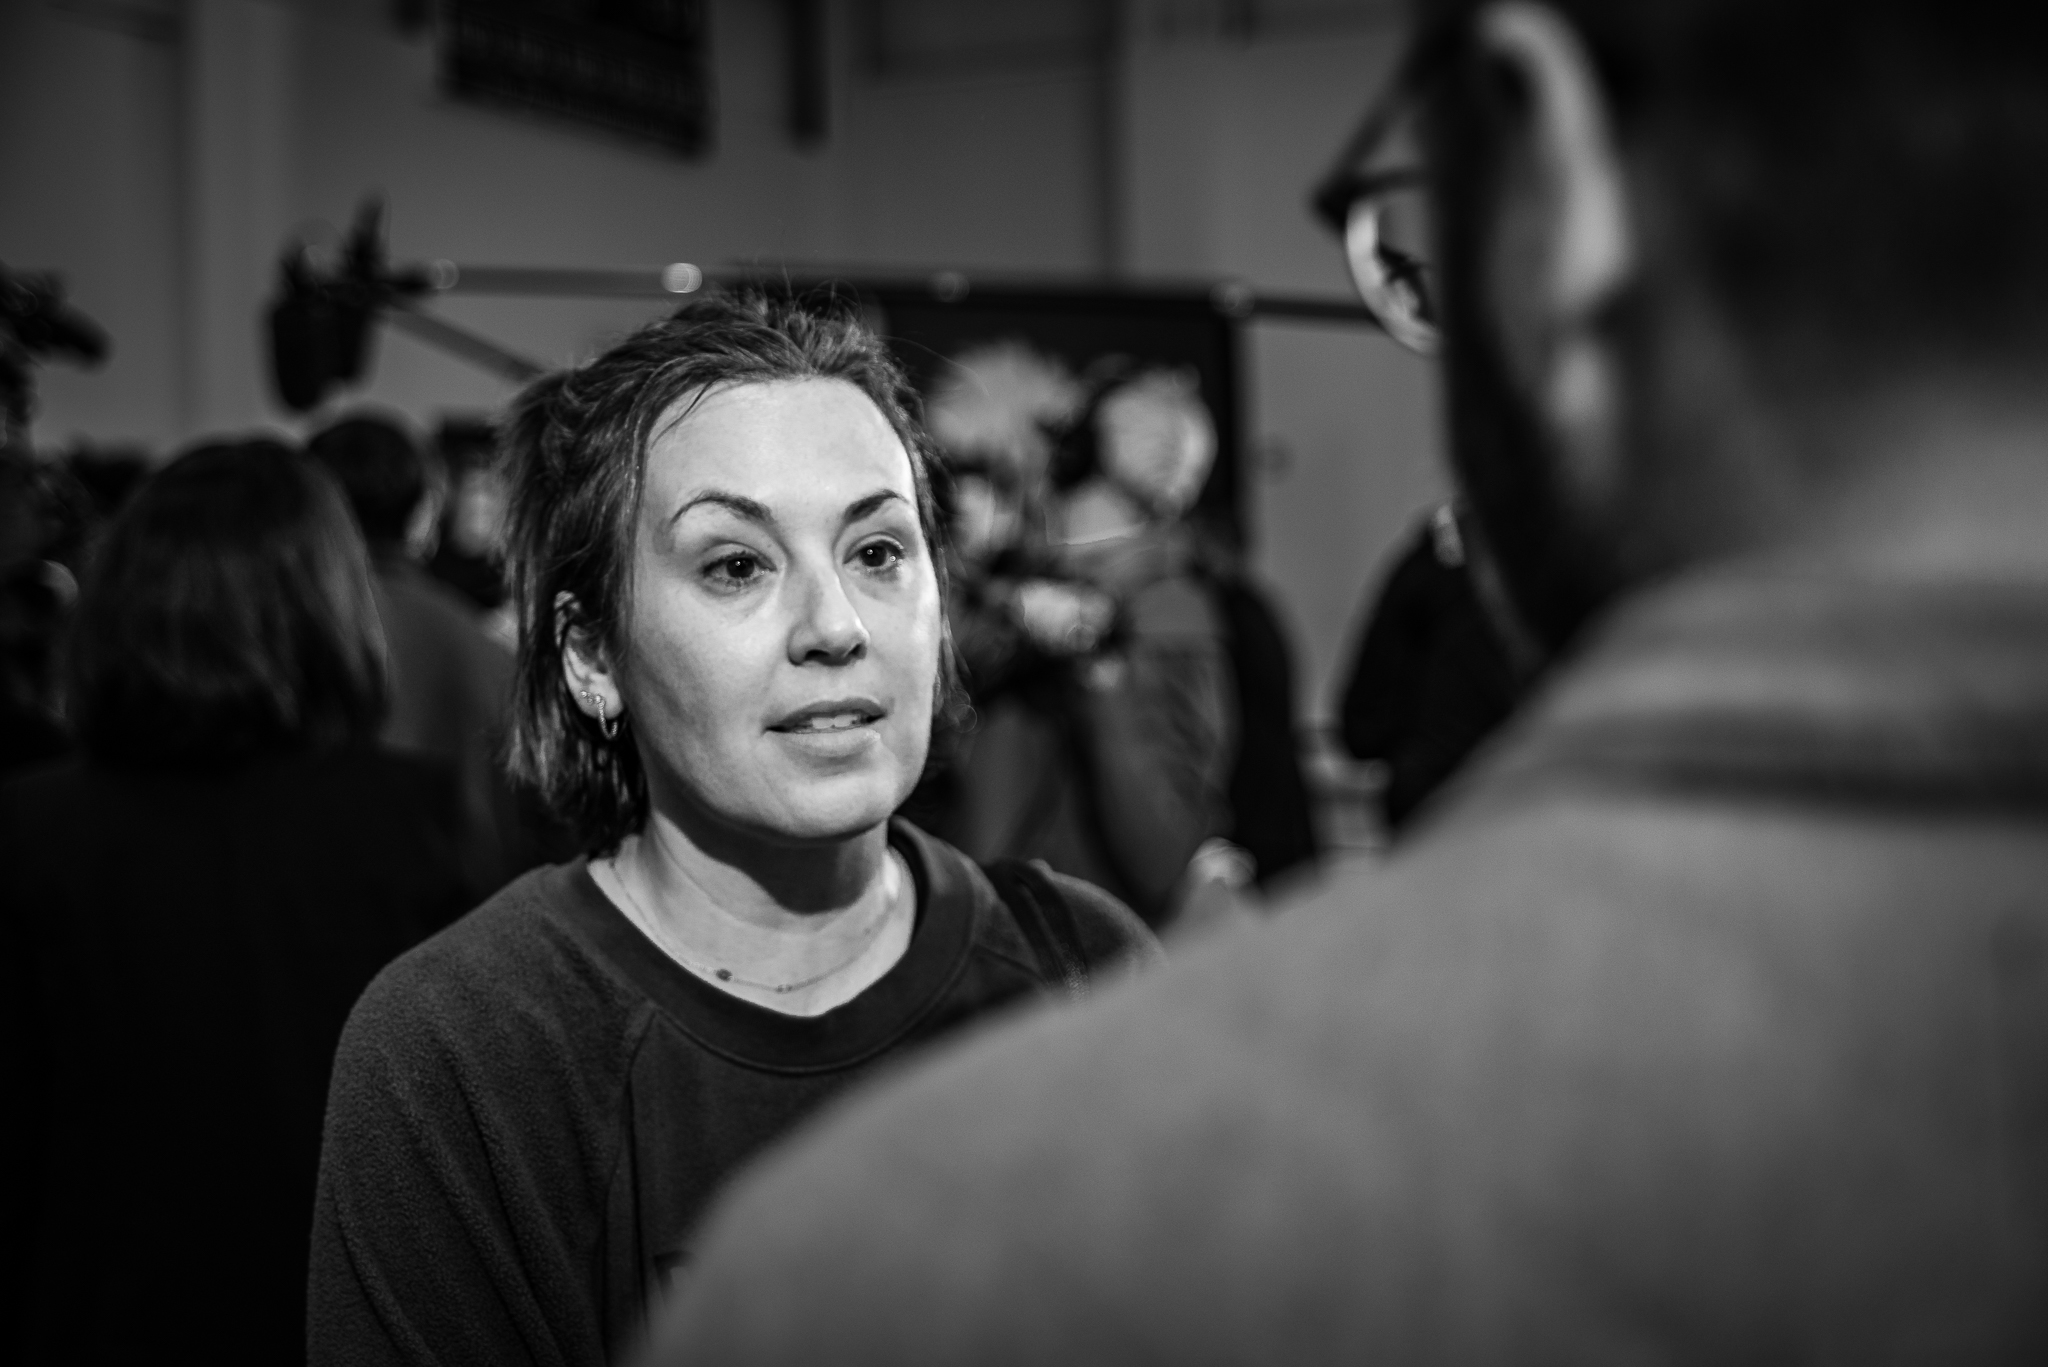 Reporter Miroslav Tomoski interviews Marybeth Berry at a rally in Sumter, South Carolina. February 28, 2020. Photo: Lance Monotone.